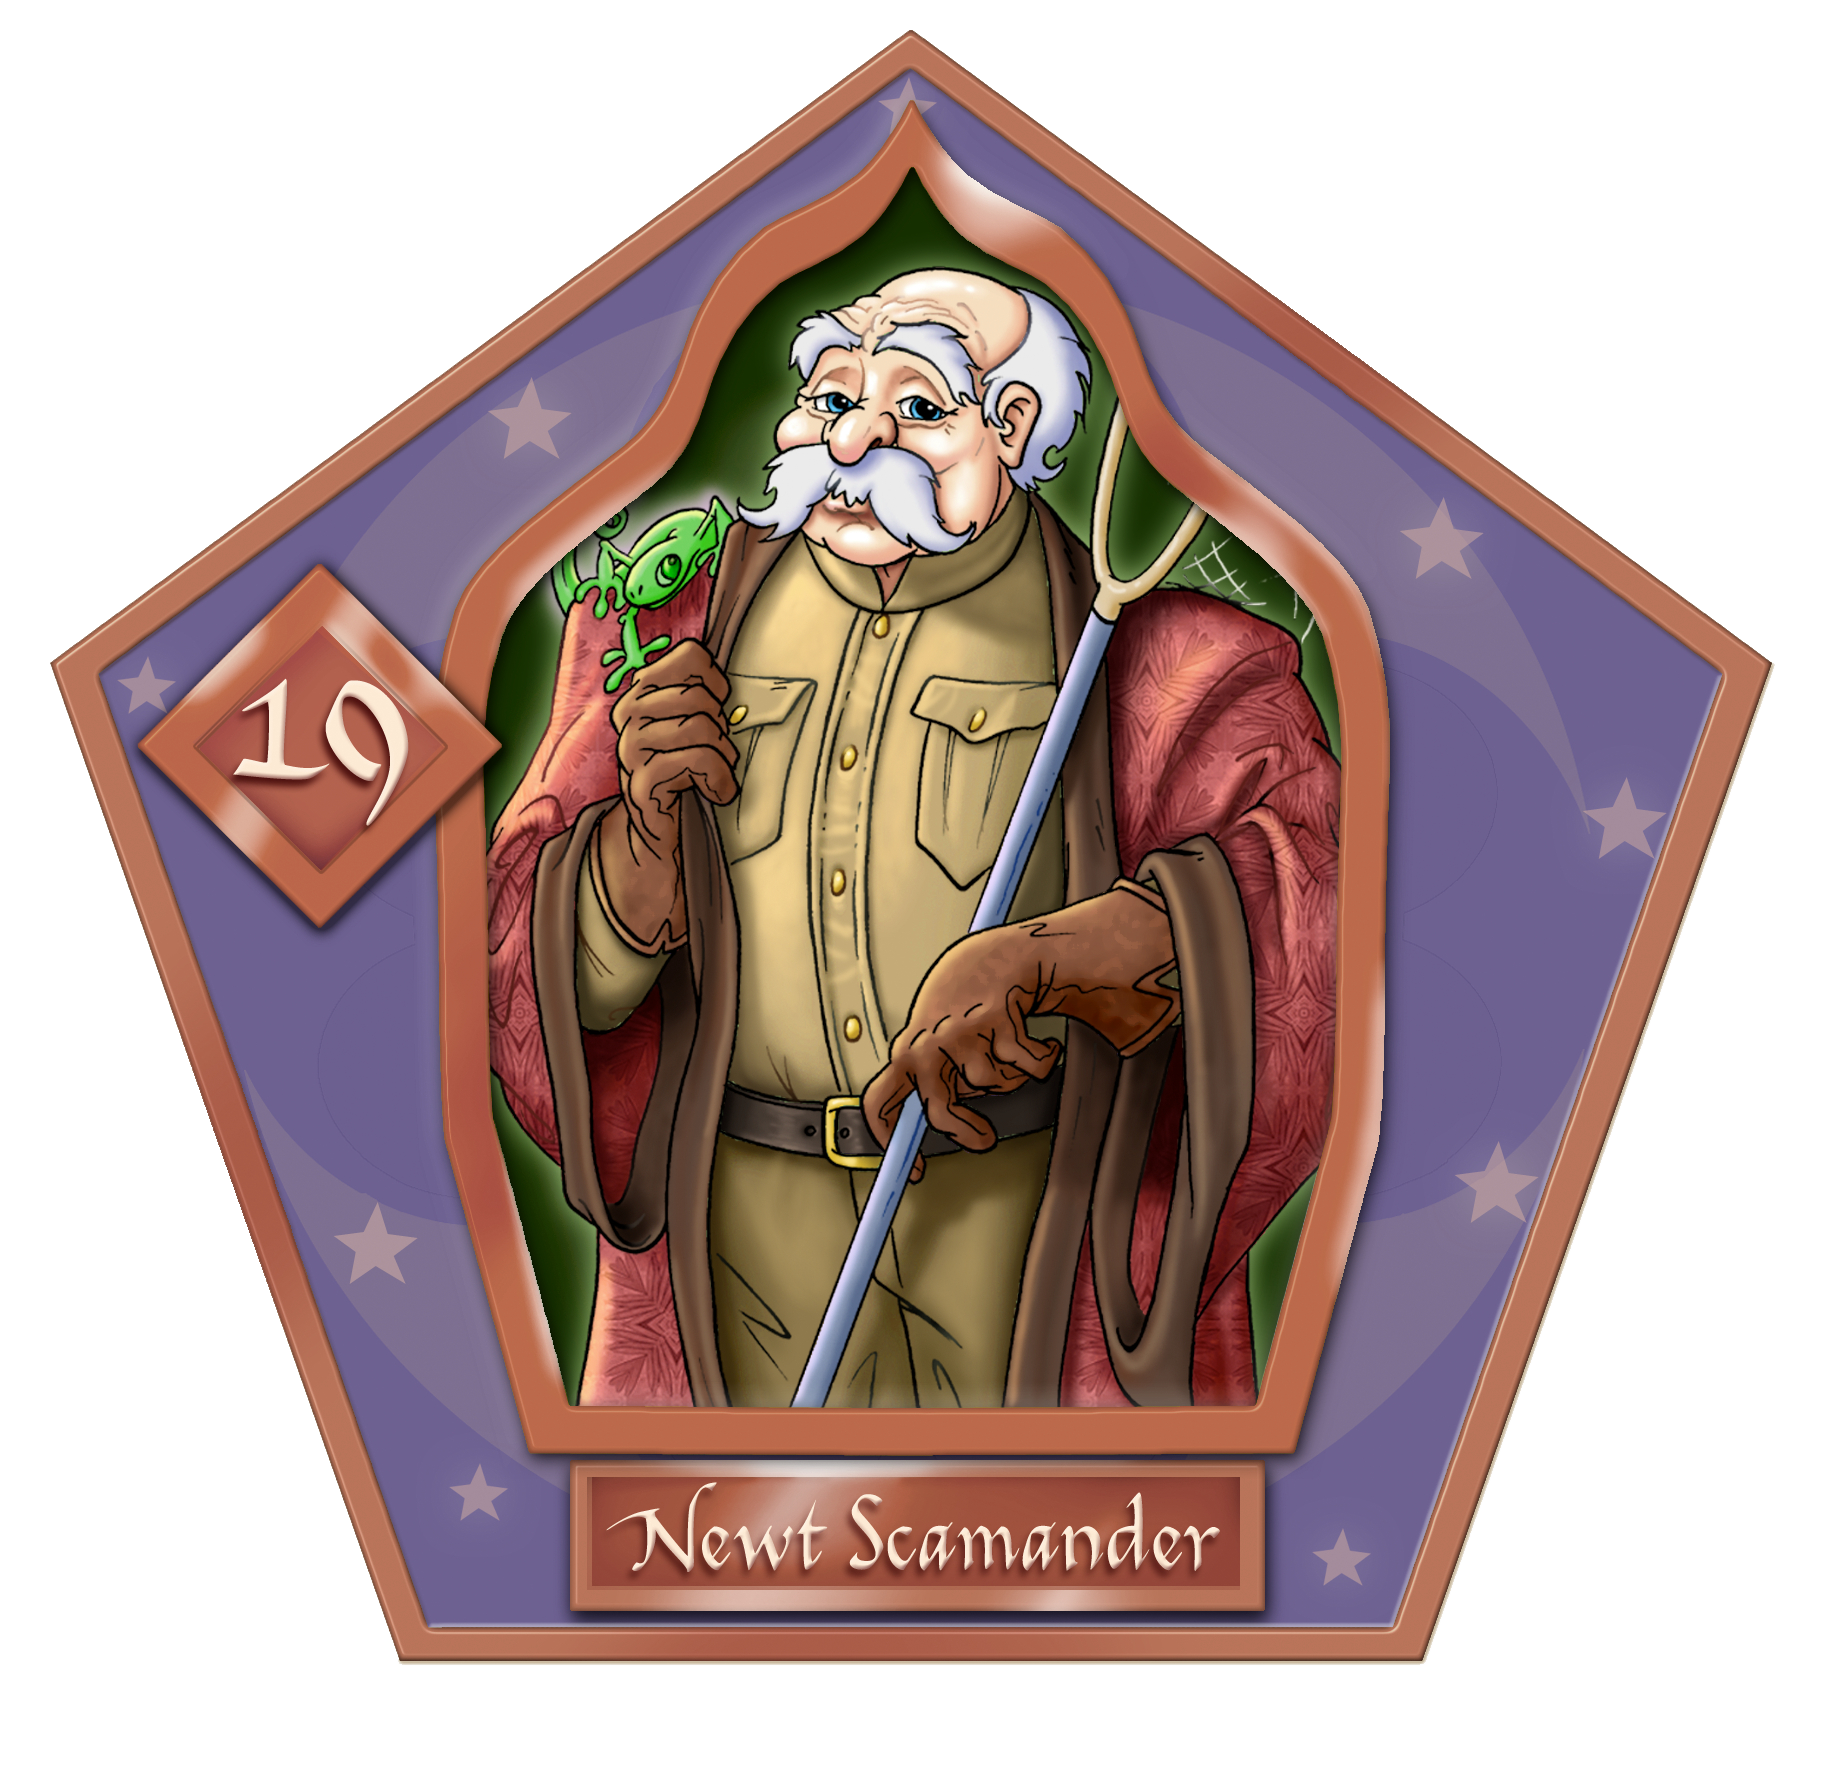 File:Newt Scamander-19-chocFrogCard.png